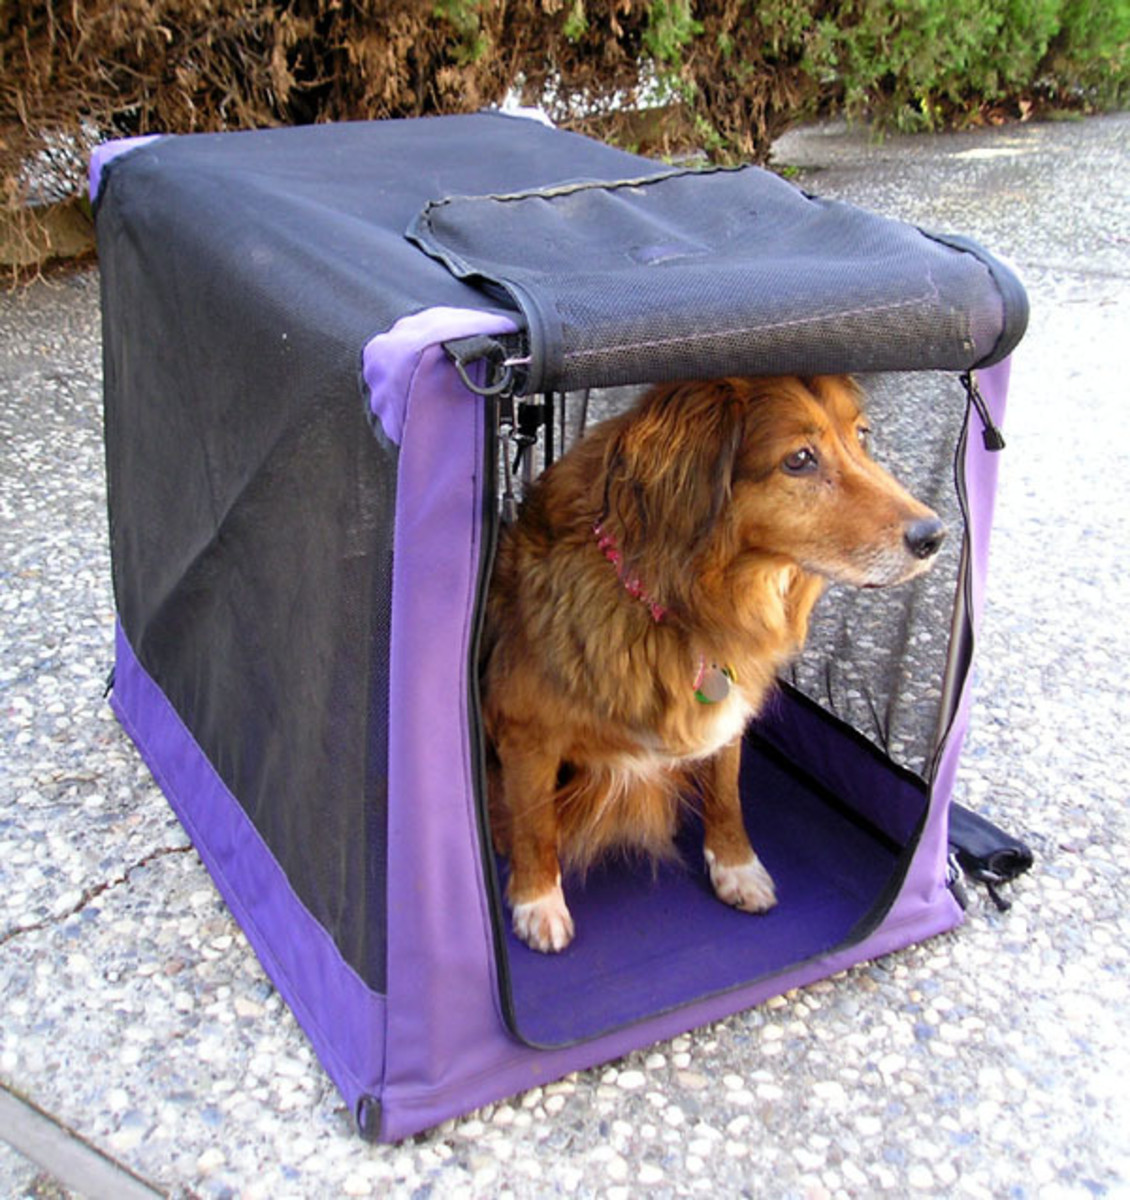 Fabric crates are best suited for calm dogs. These are easy to pack and transport and are convenient for those who enjoy traveling, camping, or other outdoor activities